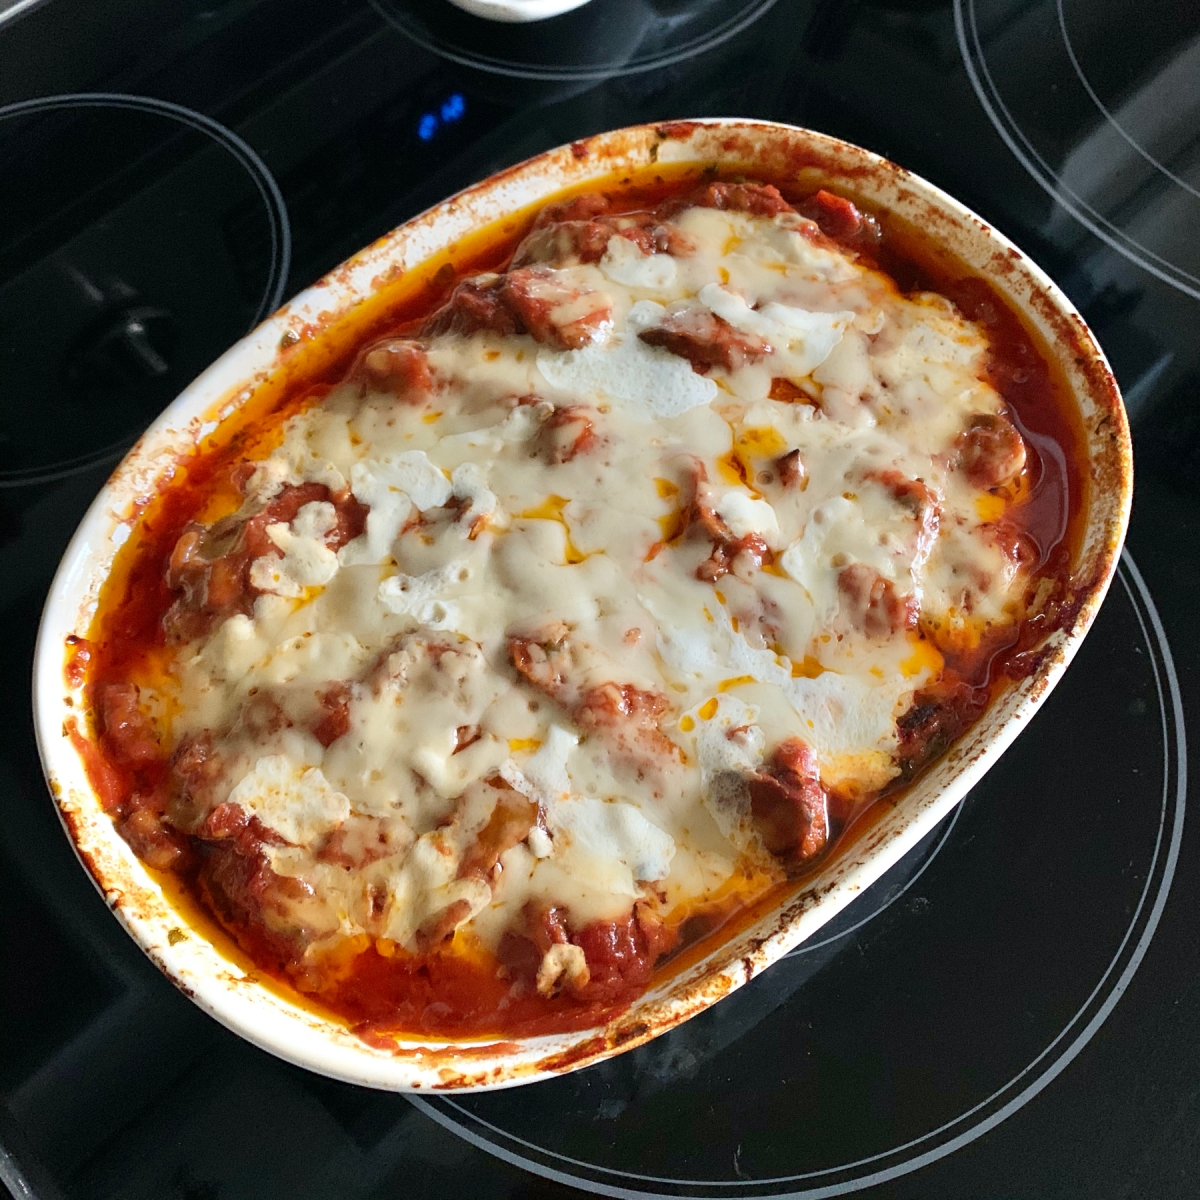 Meatball and zucchini casserole is Keto meal